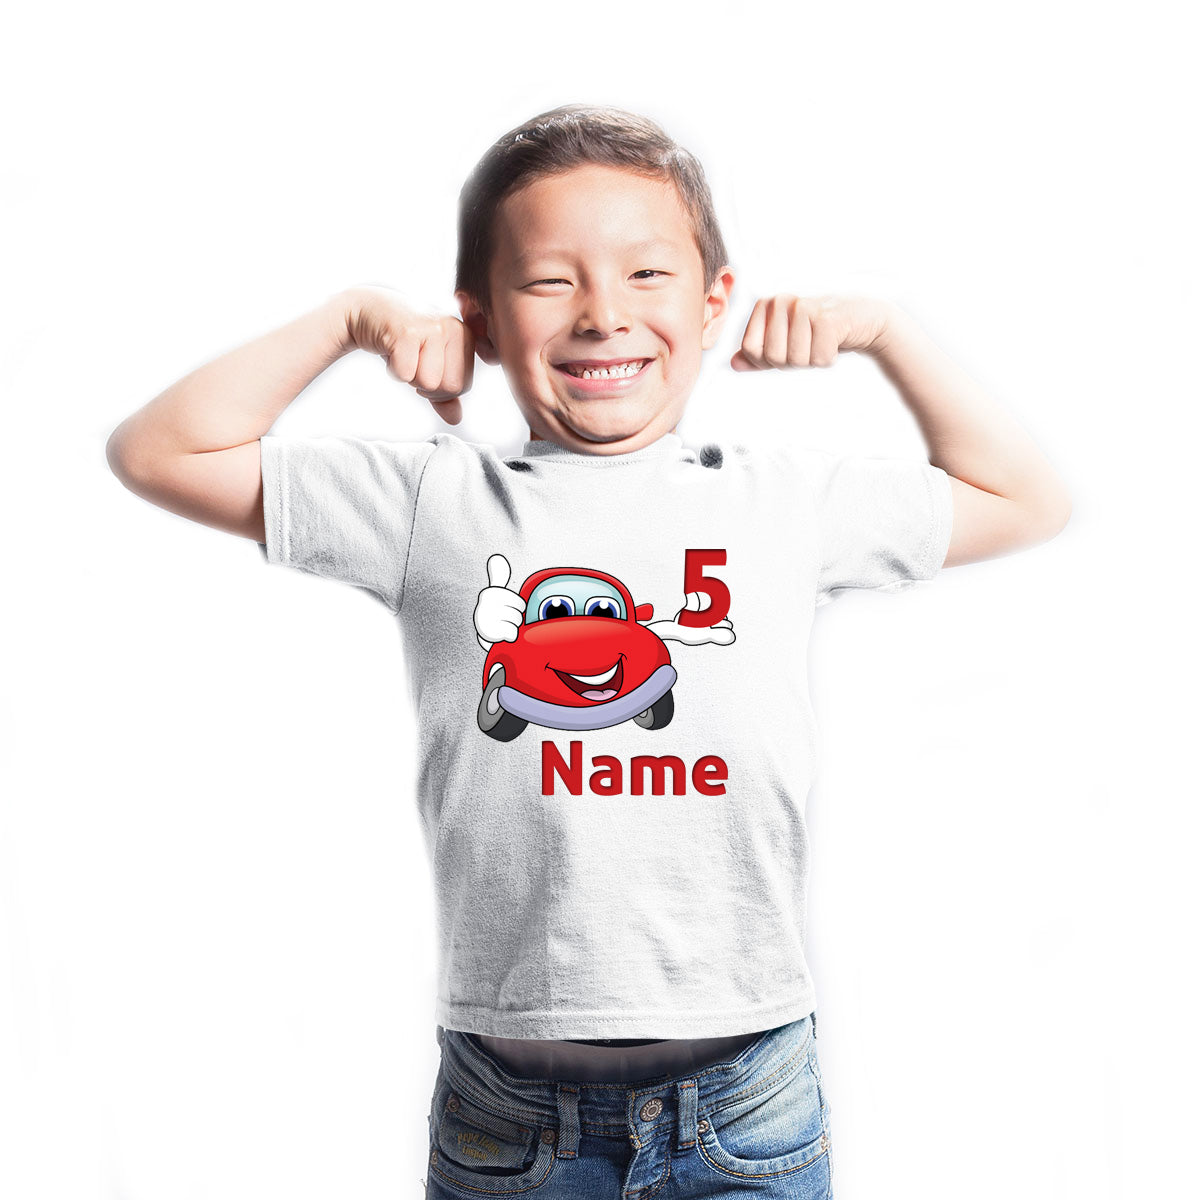 Sprinklecart Cute Name Printed Birthday T Shirt | Customized Car Birthday Dress for Your Little One